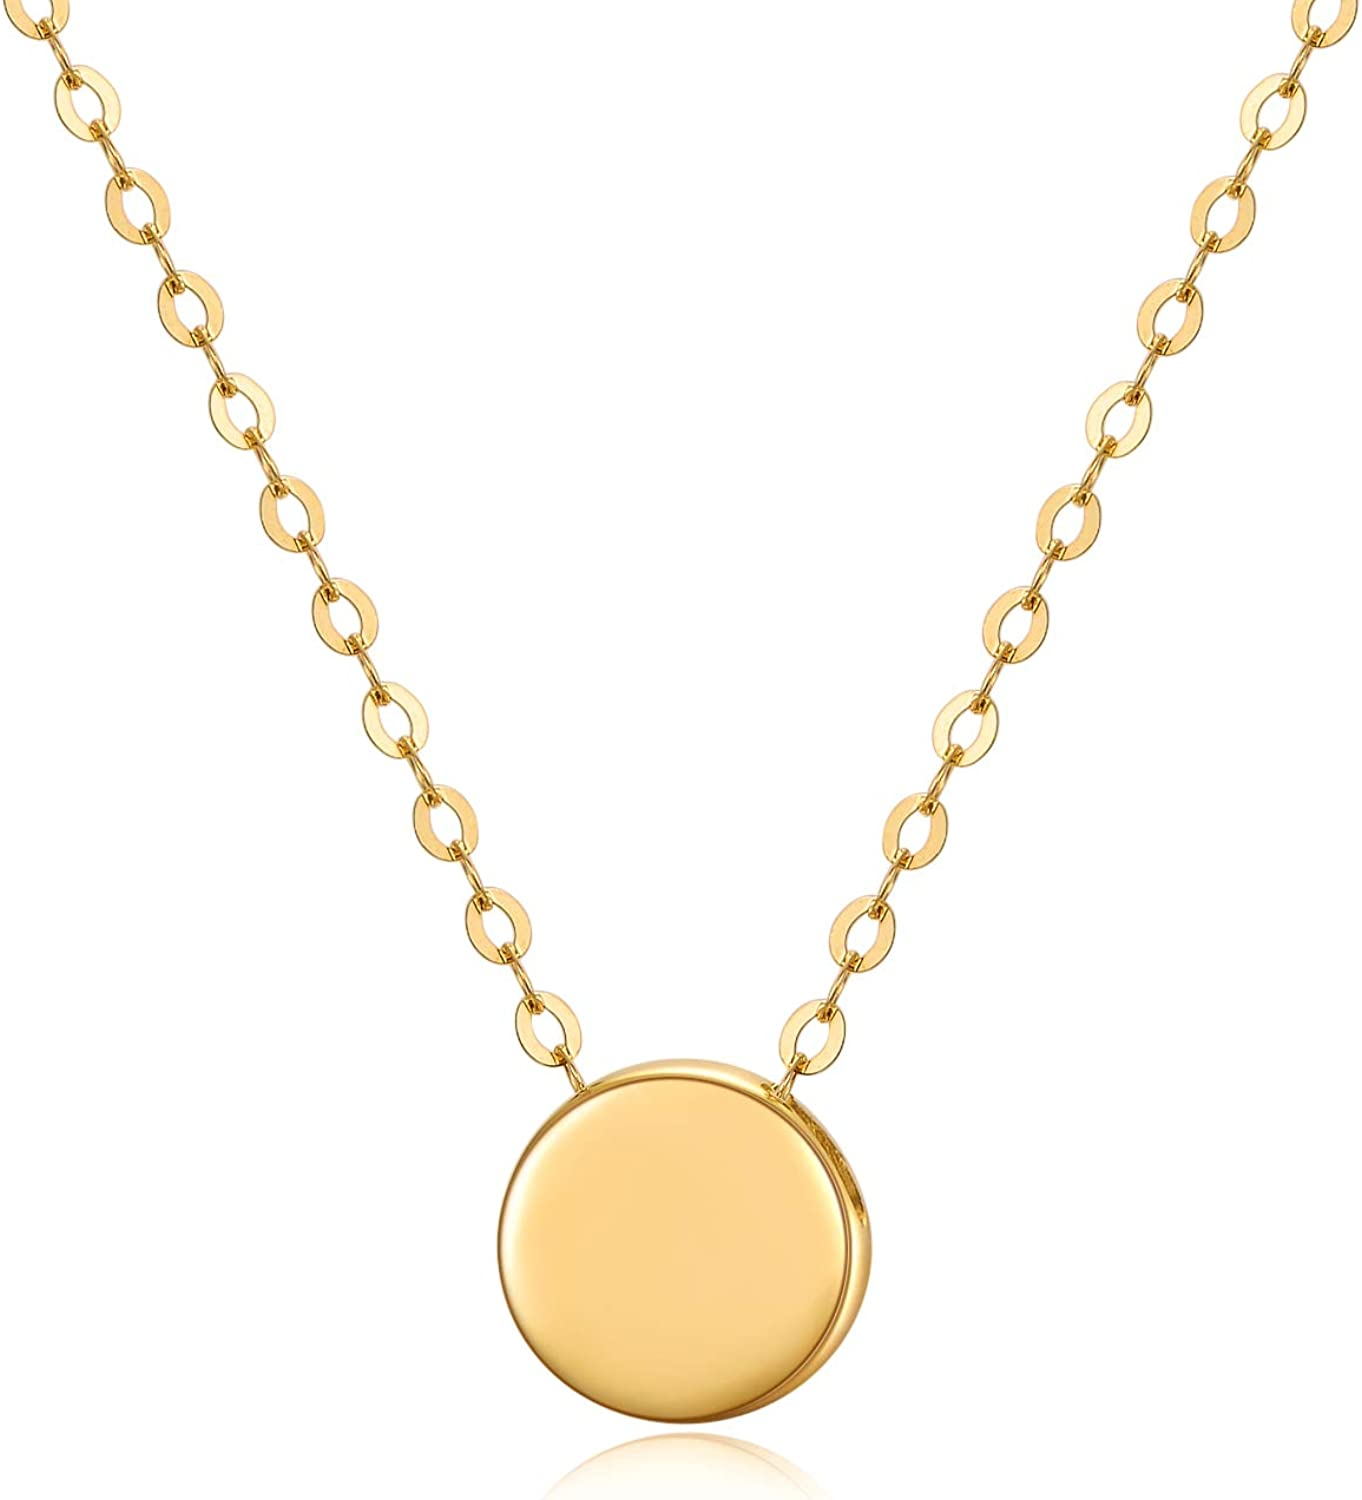 14K Solid Gold Dot Necklace for Women 7mm Round Dot Adjustable Choker Pendant Necklace Fine Jewelry for Her, Wife, Mom, Girls 16